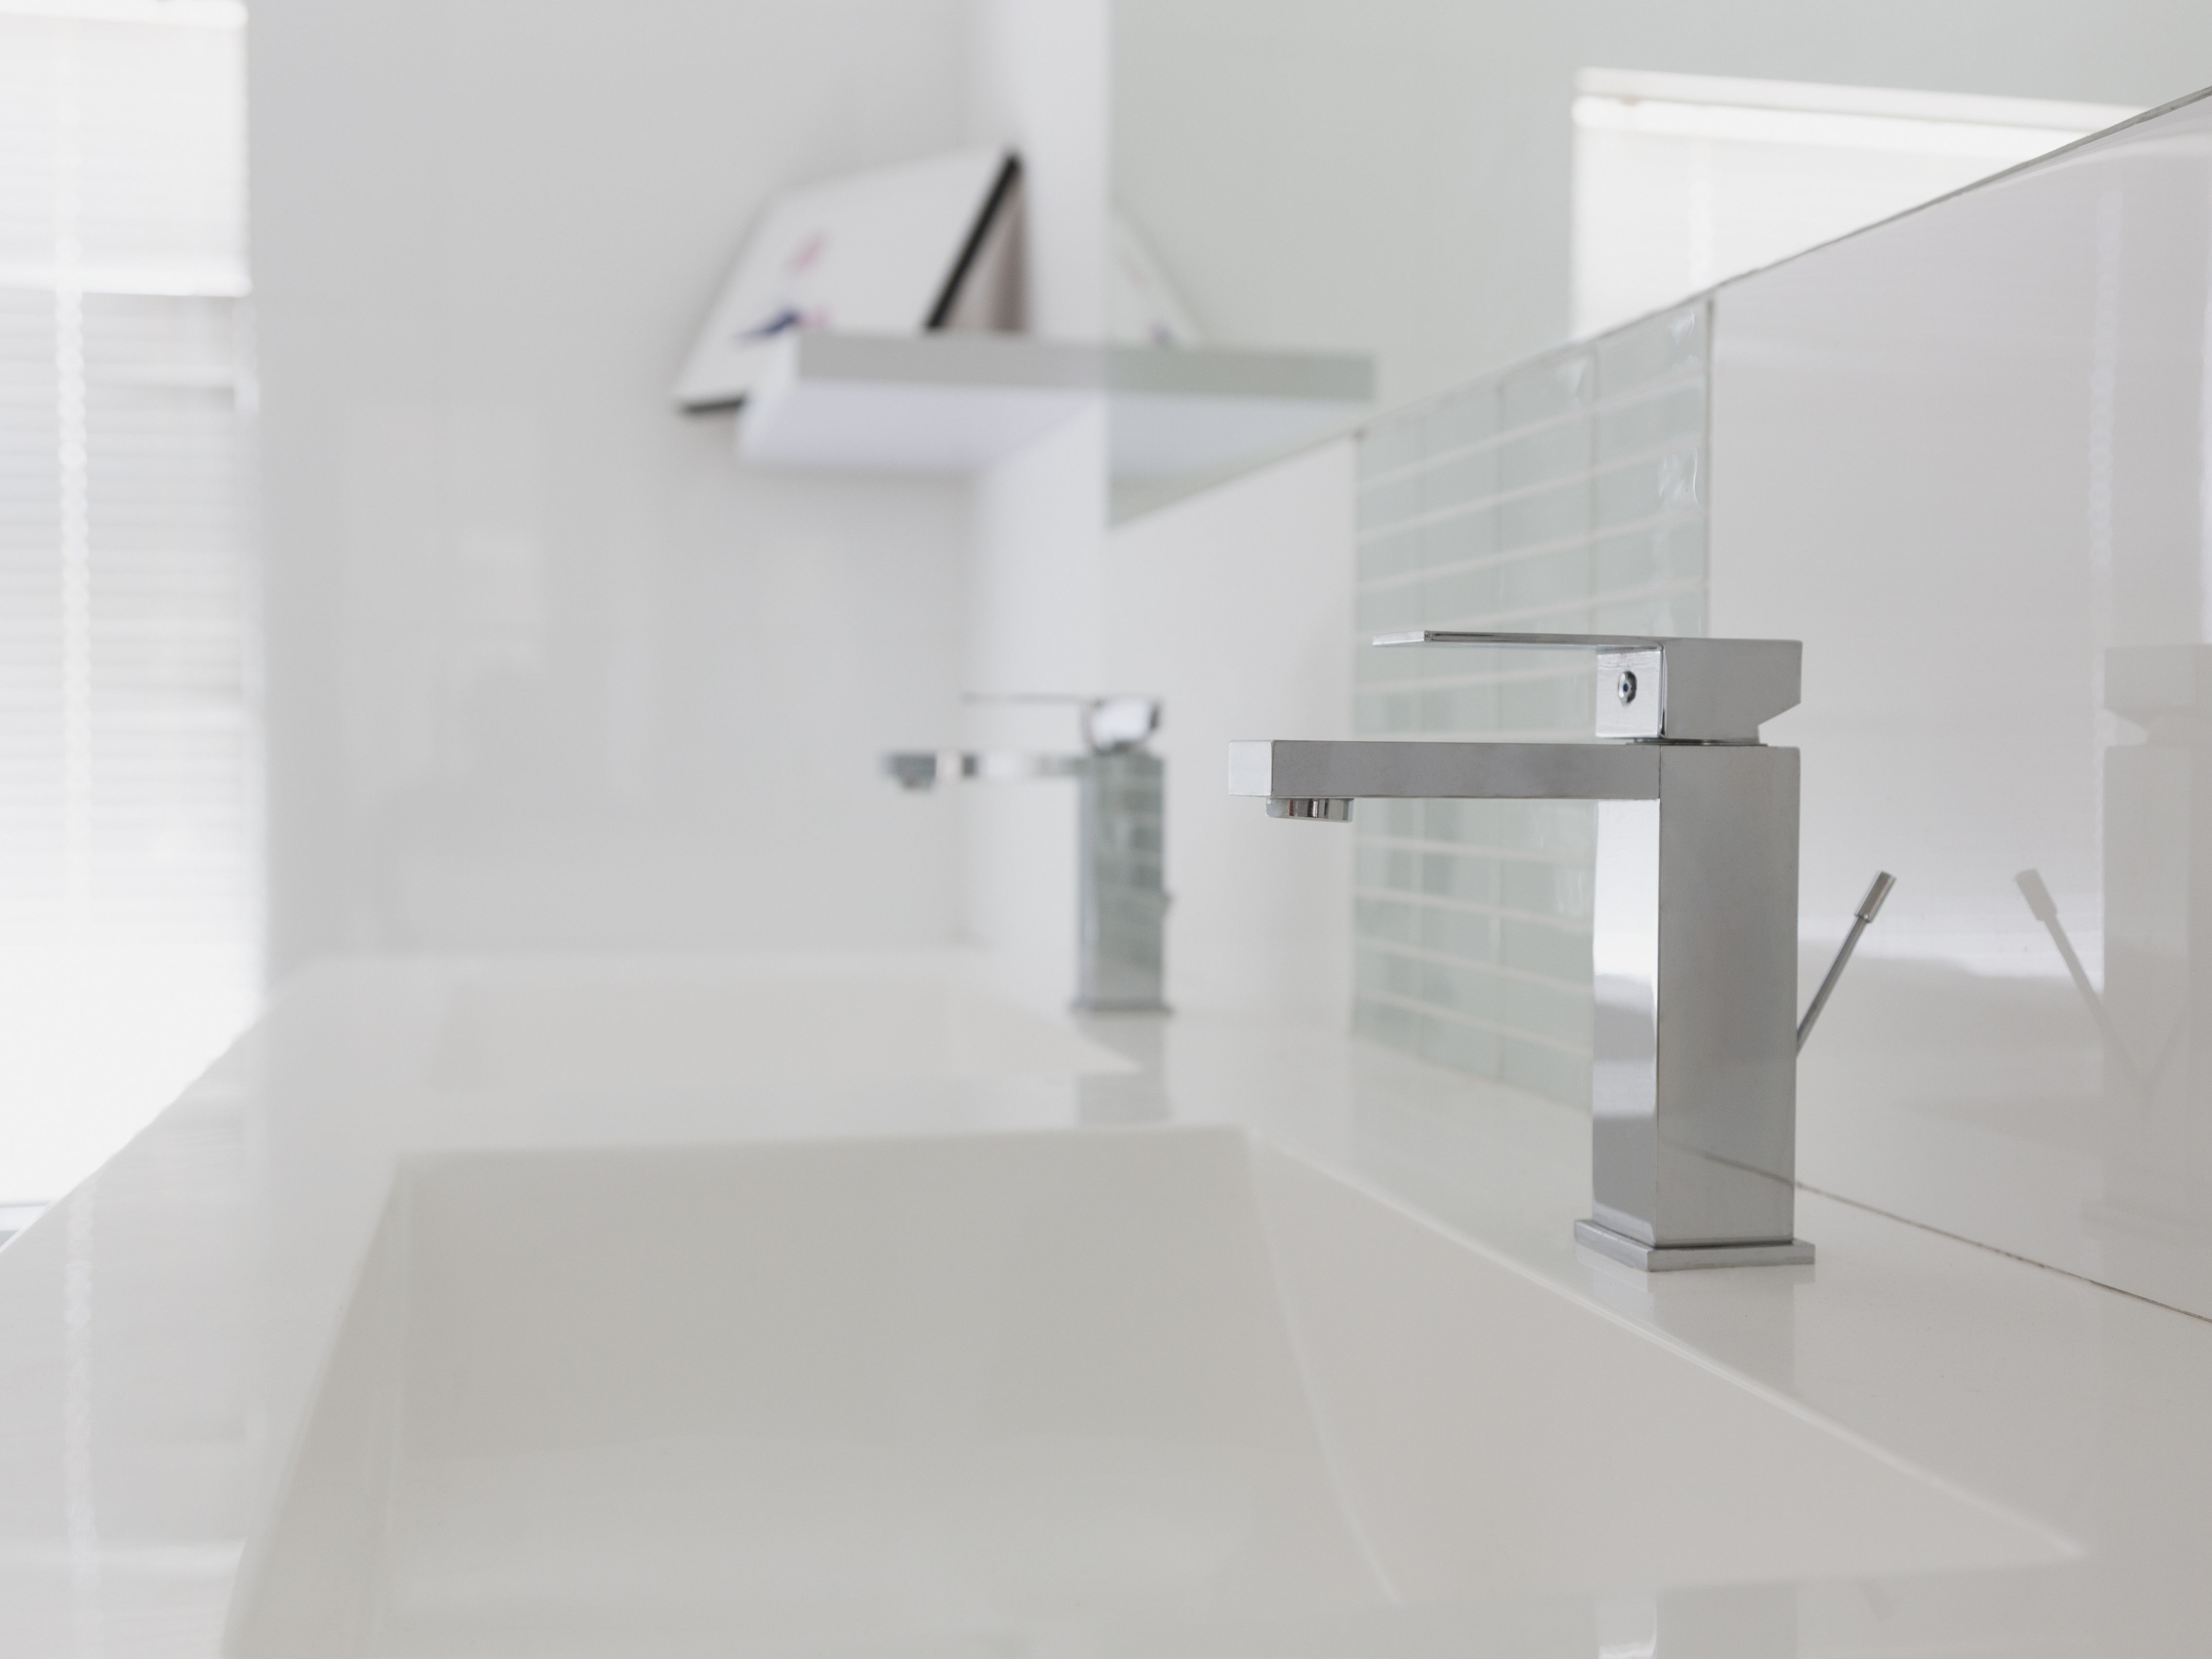 amazing marble countertop sink design and modern faucet.htm the ultimate bathroom faucet buying guide  the ultimate bathroom faucet buying guide